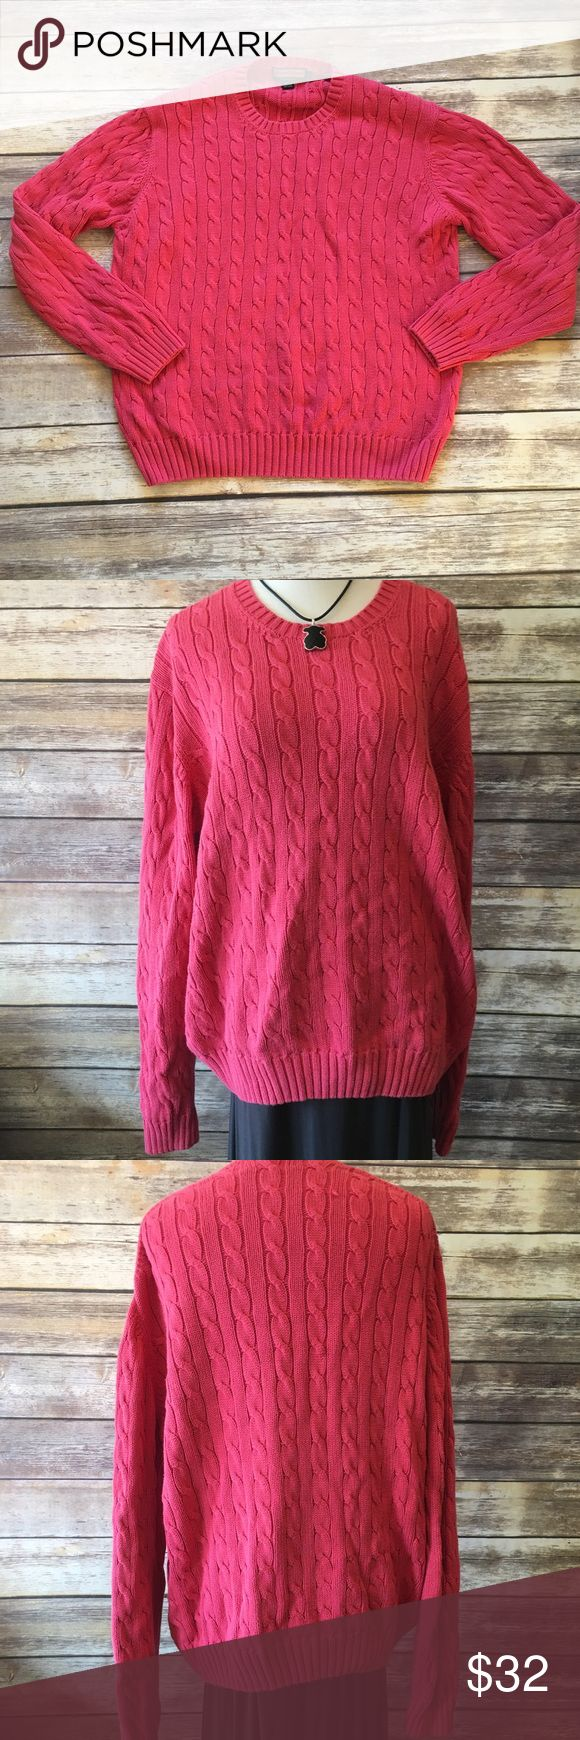 """Vineyard Vines Loose Knit Sweater Vineyard Vines loose Knit sweater in pink. Made of 100% cotton. Measures from pit to pit 22""""/ length 23"""". Vineyard Vines Sweaters"""